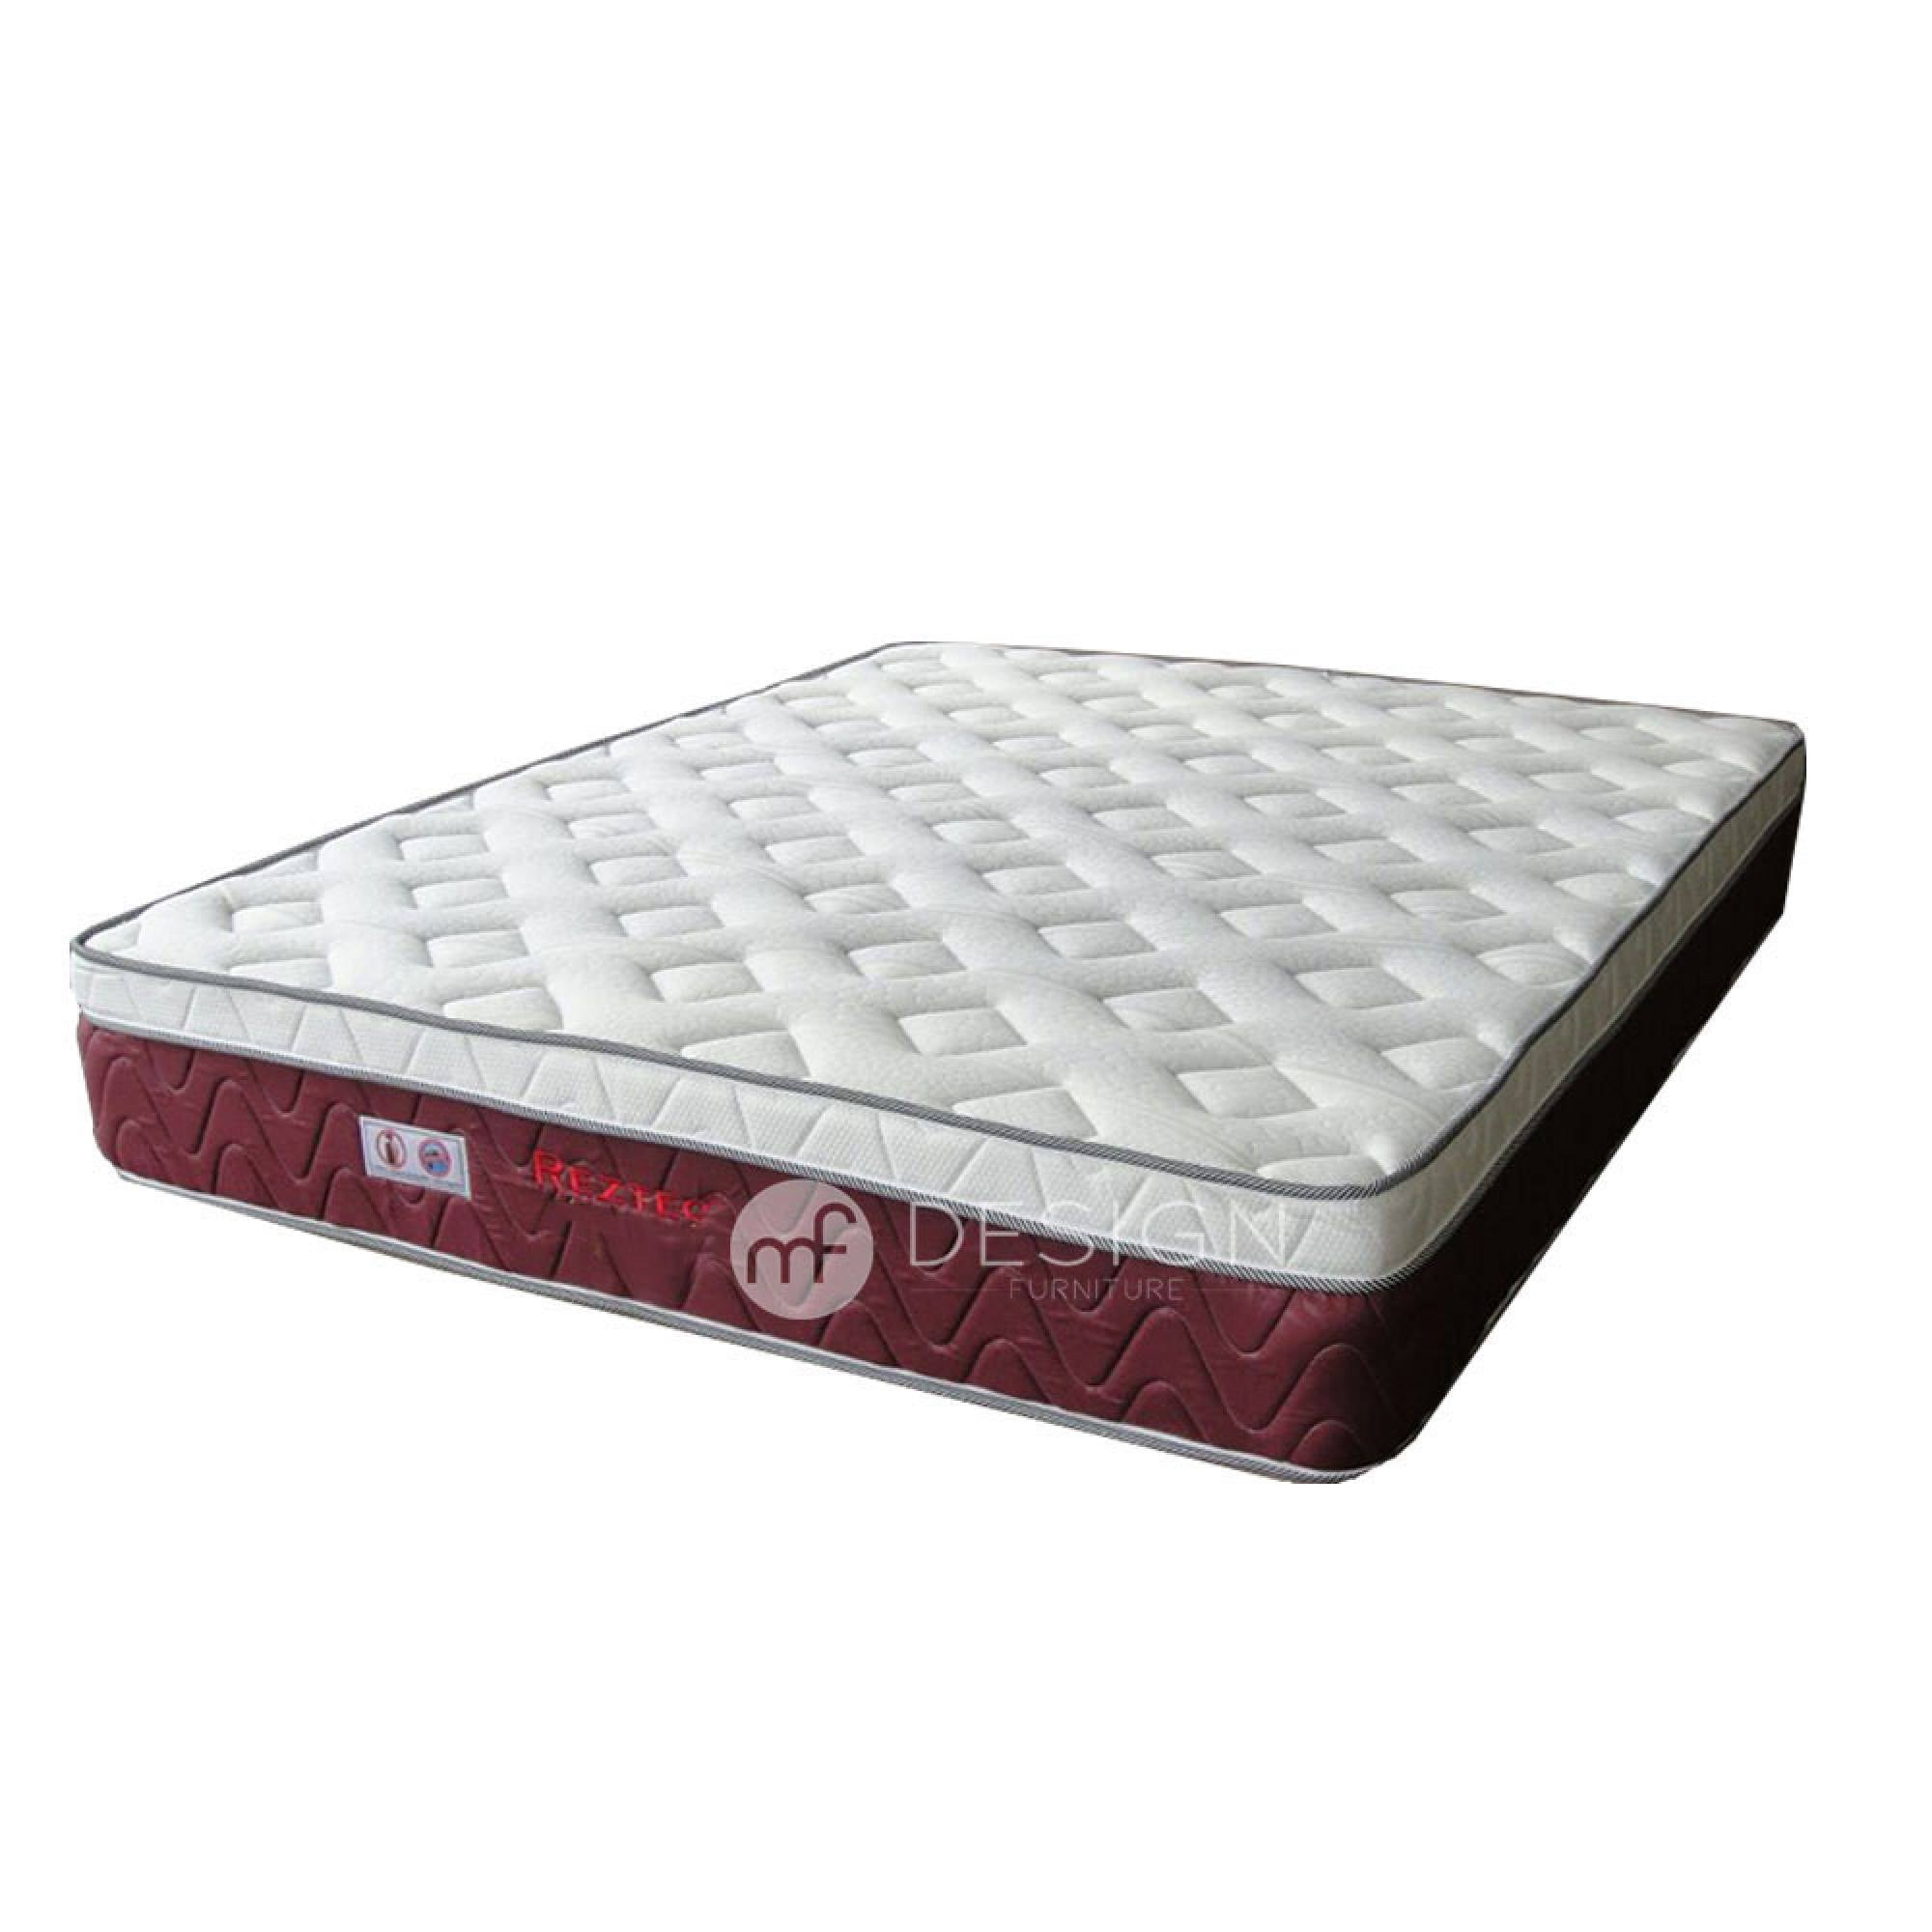 mf design reztec dc series 1 11''thick mattress(soft knitted fabric)